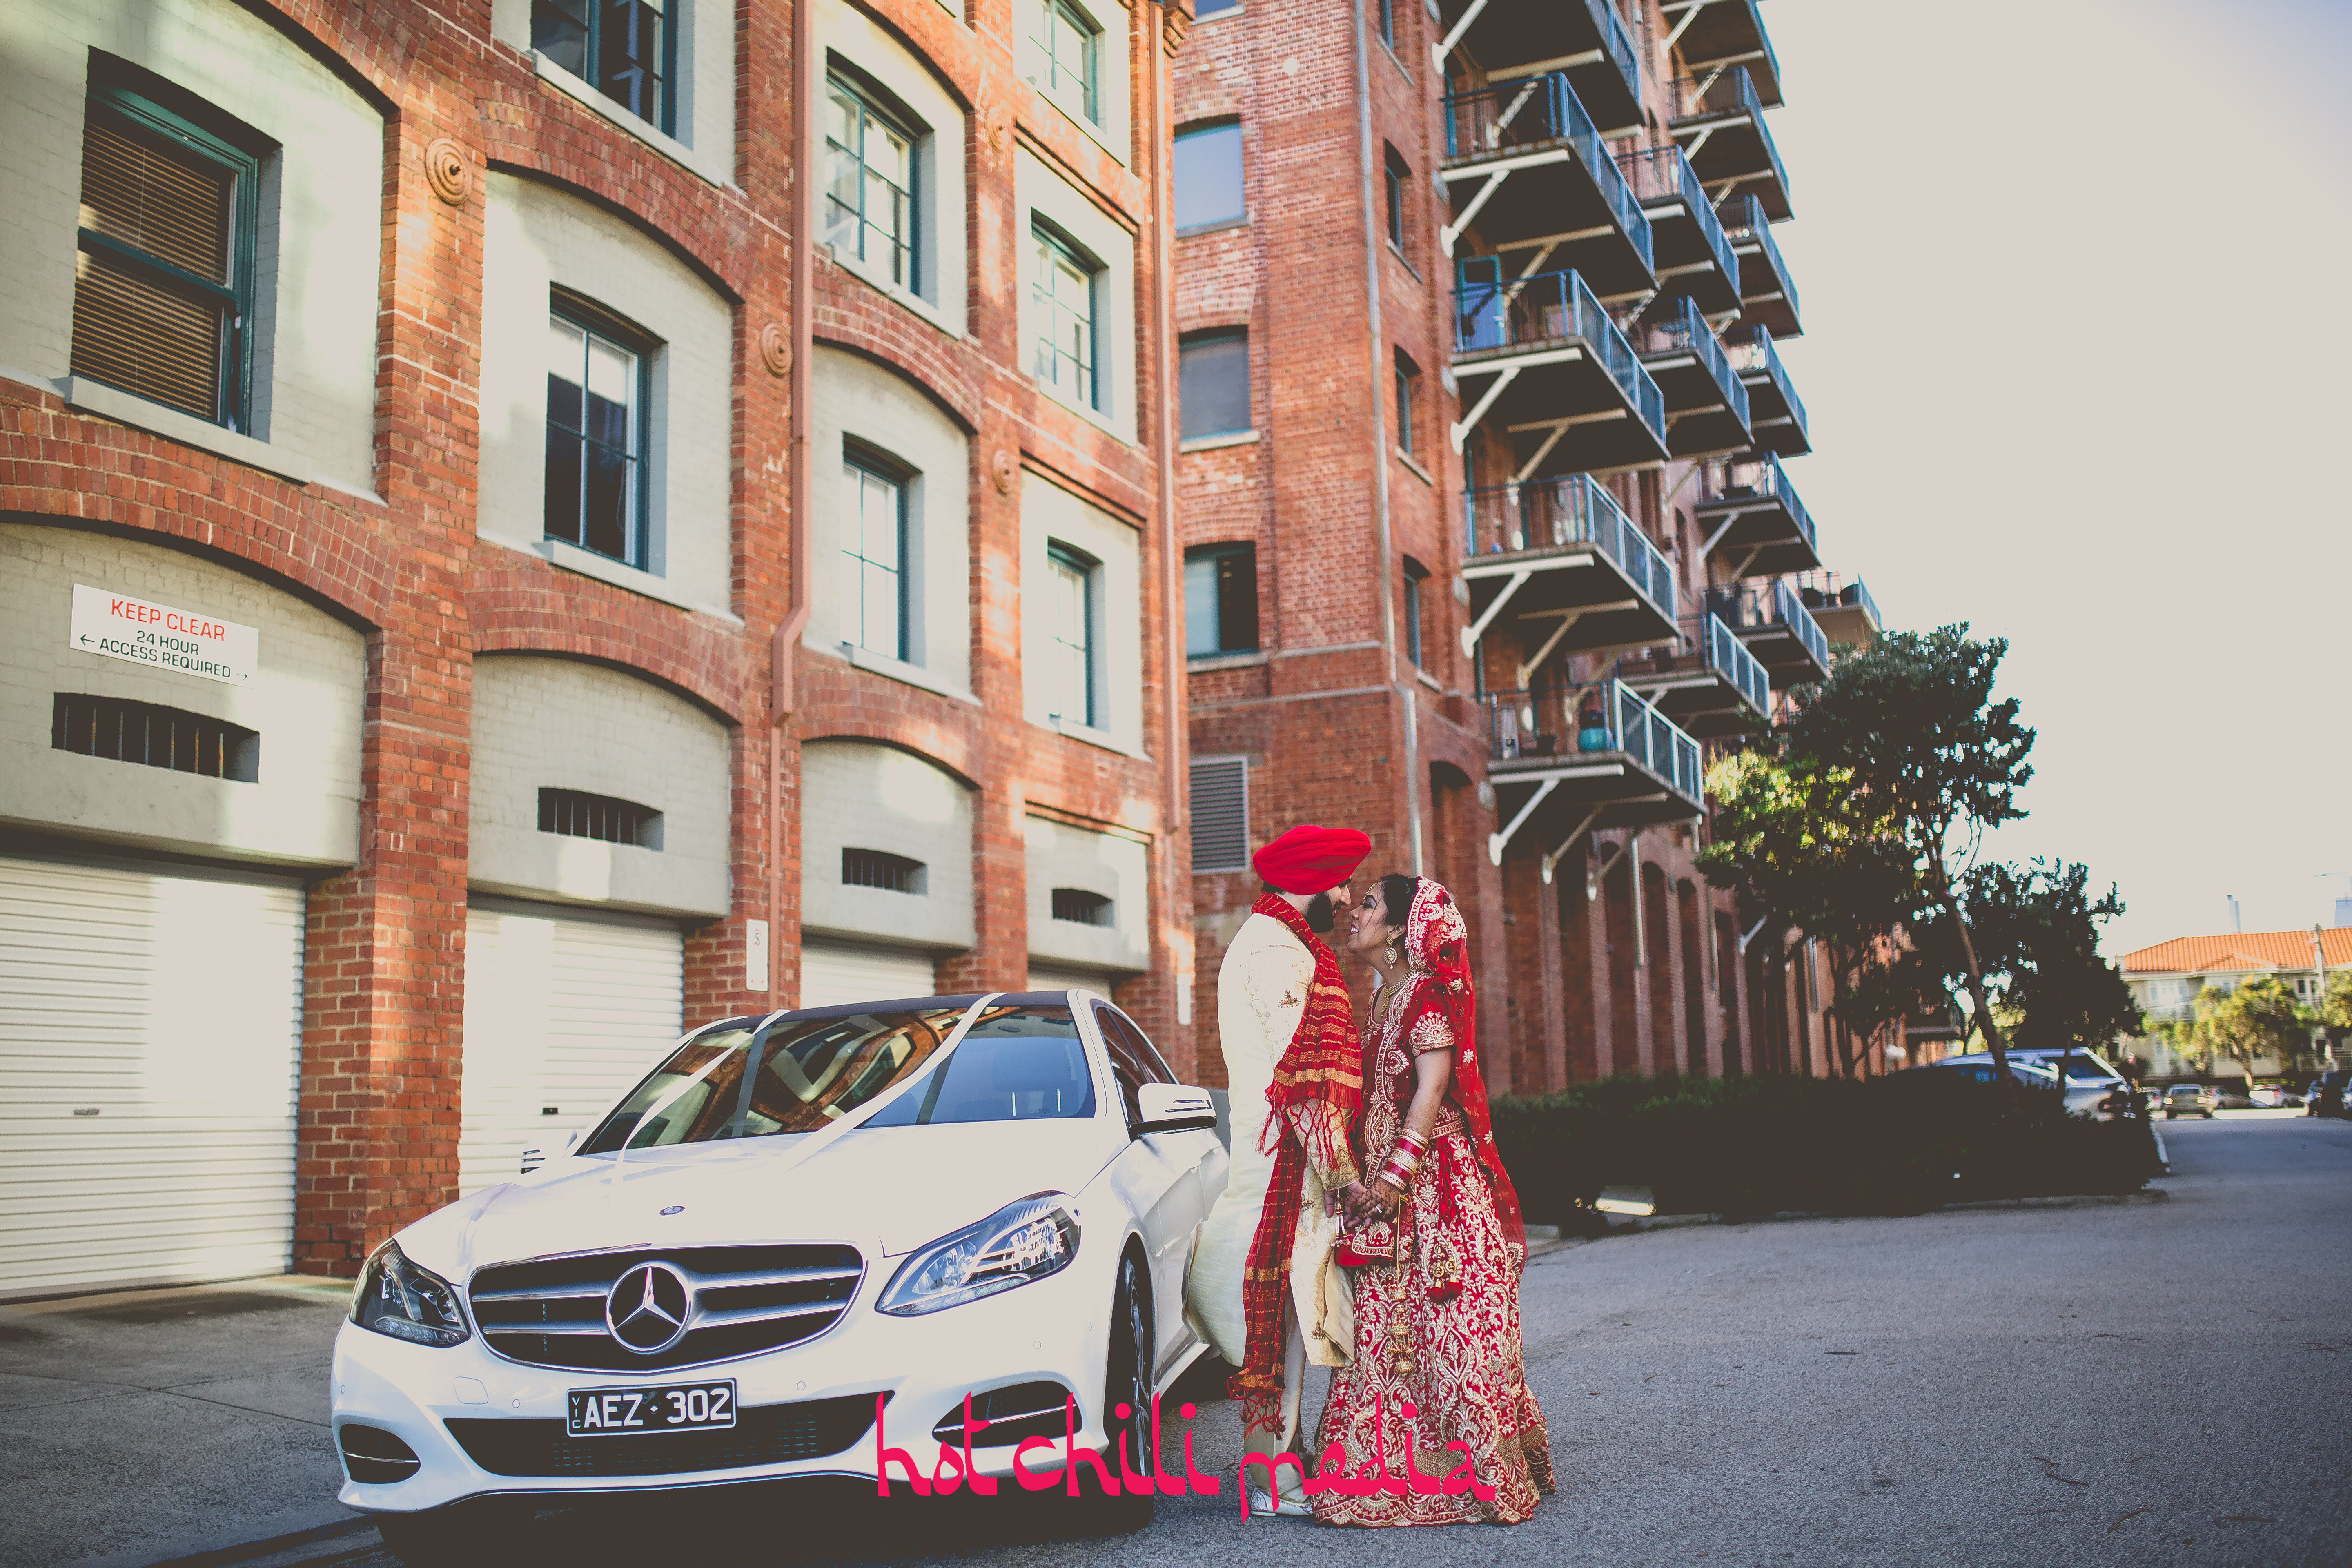 Mercedes Benz Hire Wedding Car Bridal Cars Chauffeured Cars